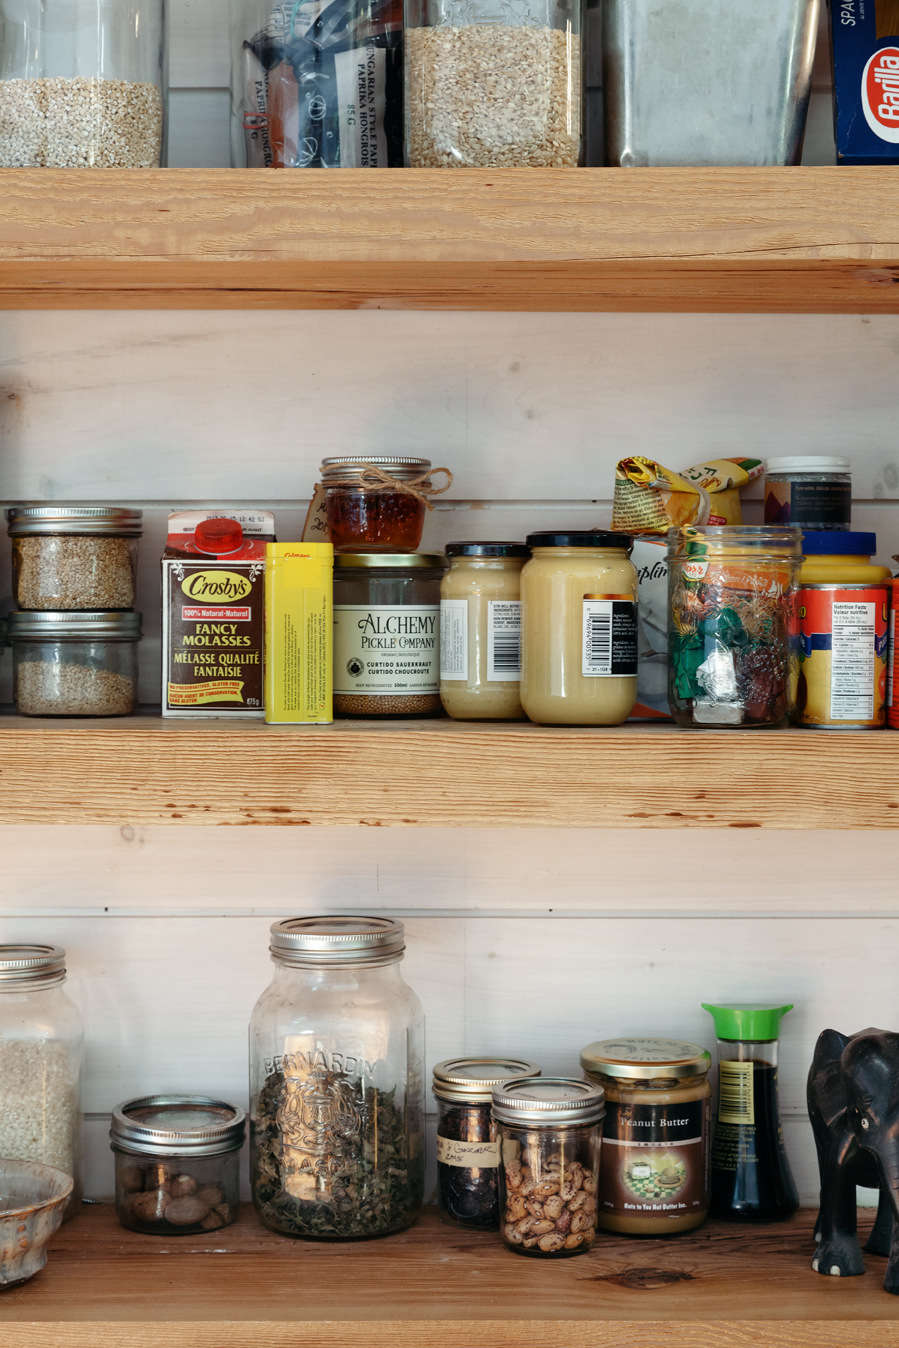 A peek at the various pantry items stored on the open shelves for easy access.